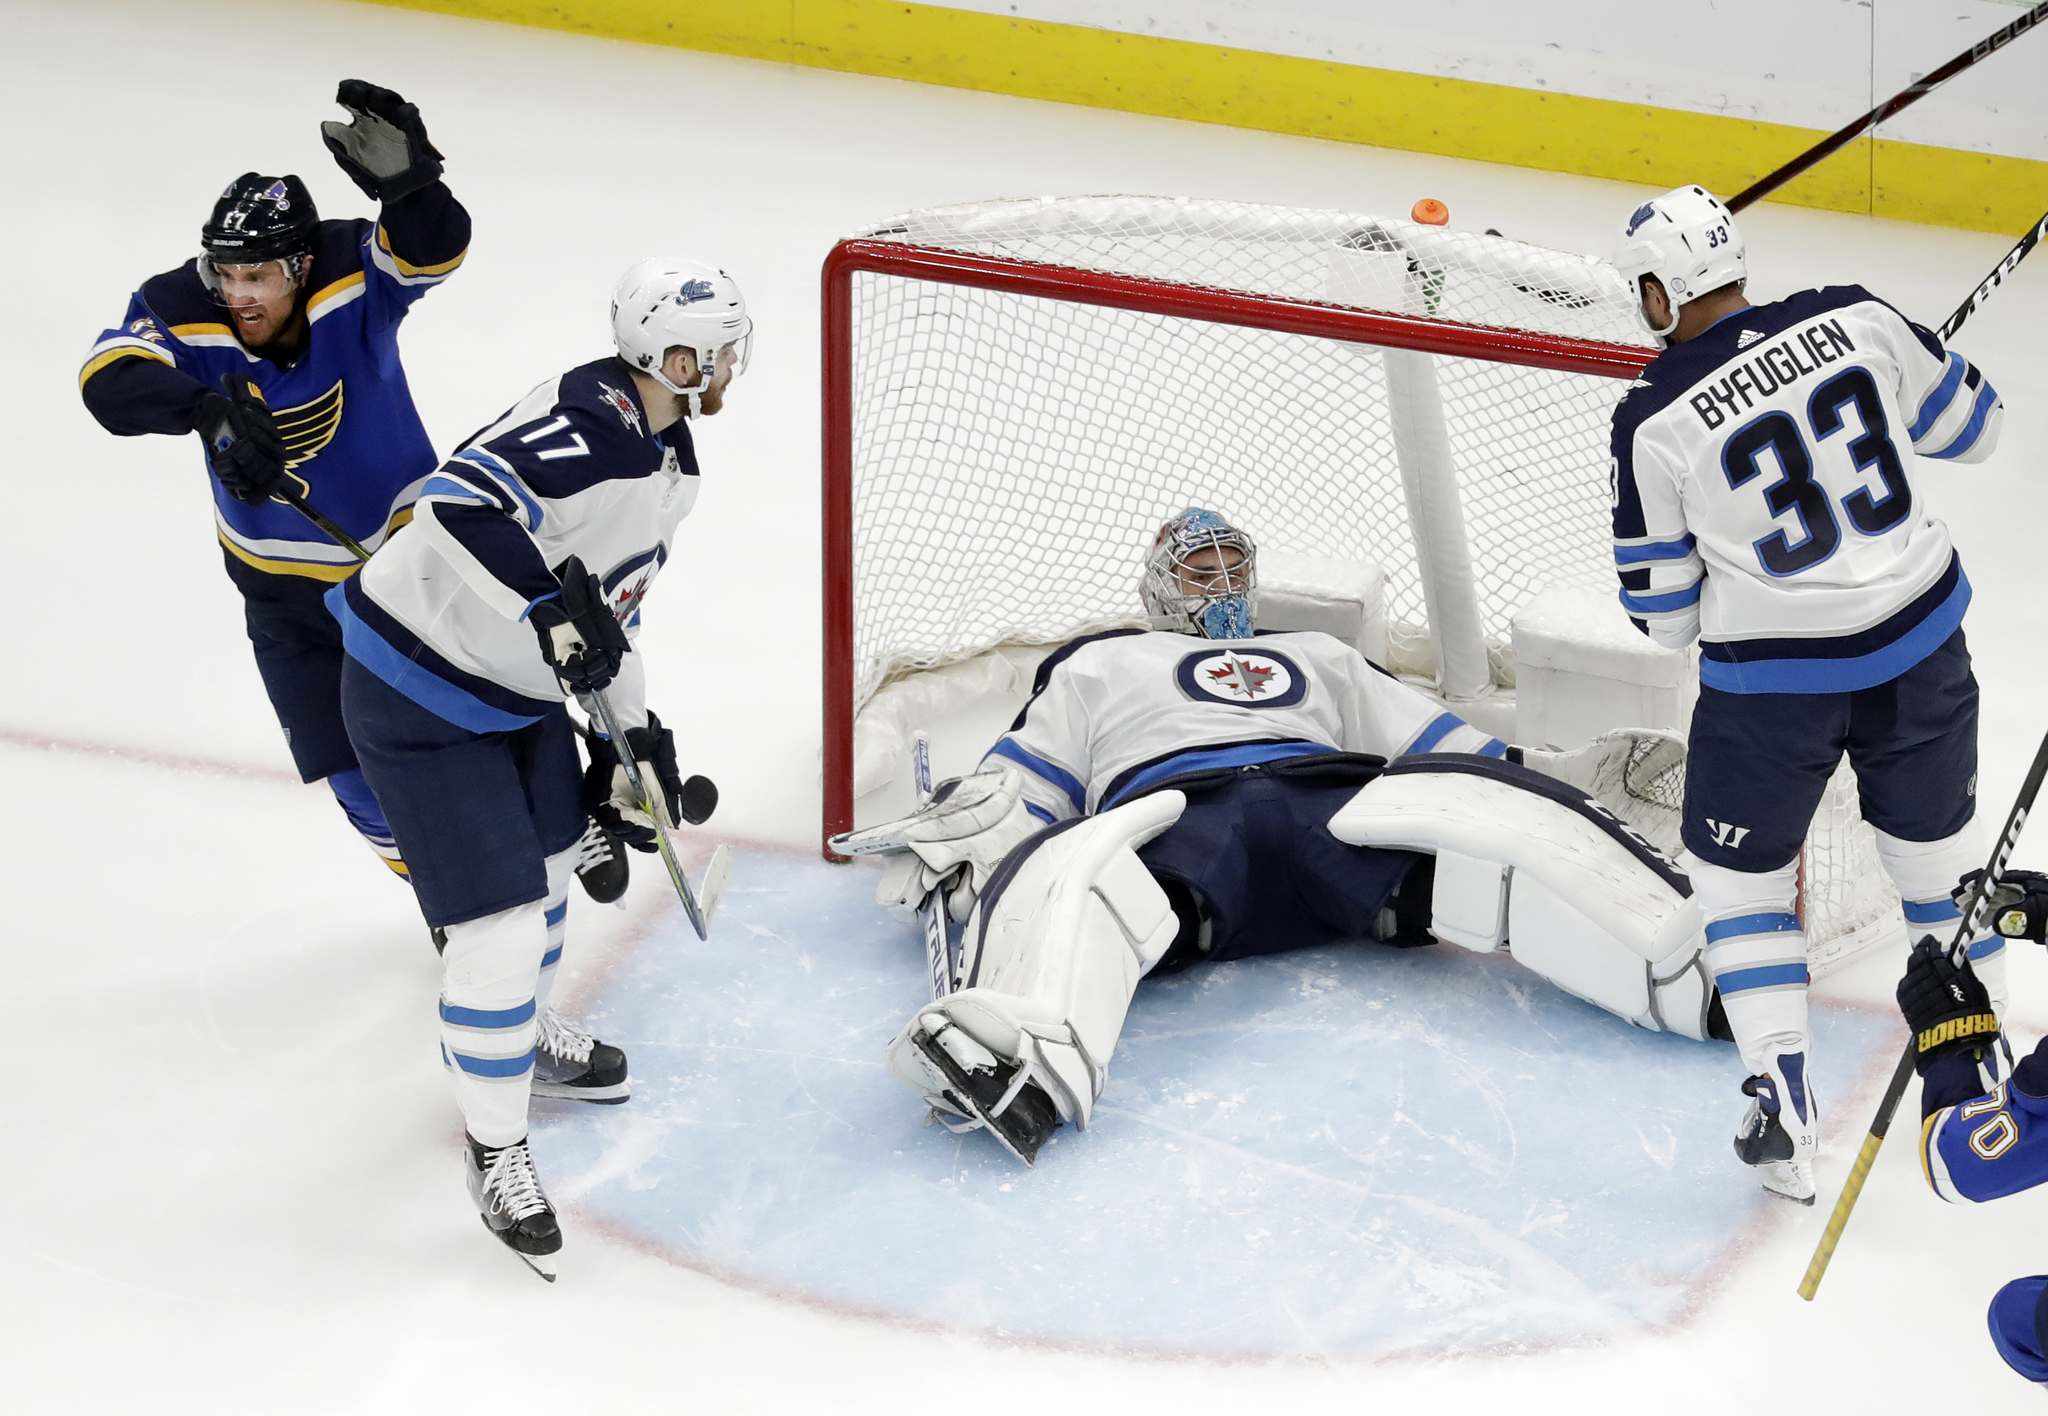 St. Louis Blues' Jaden Schwartz, left, celebrates after scoring past Winnipeg Jets goaltender Connor Hellebuyck who lies in the net as Jets' Adam Lowry, second from left, and Dustin Byfuglien (33) watch during the first period in Game 6 of an NHL first-round hockey playoff series, Saturday, April 20, 2019, in St. Louis. (AP Photo/Jeff Roberson)</p>